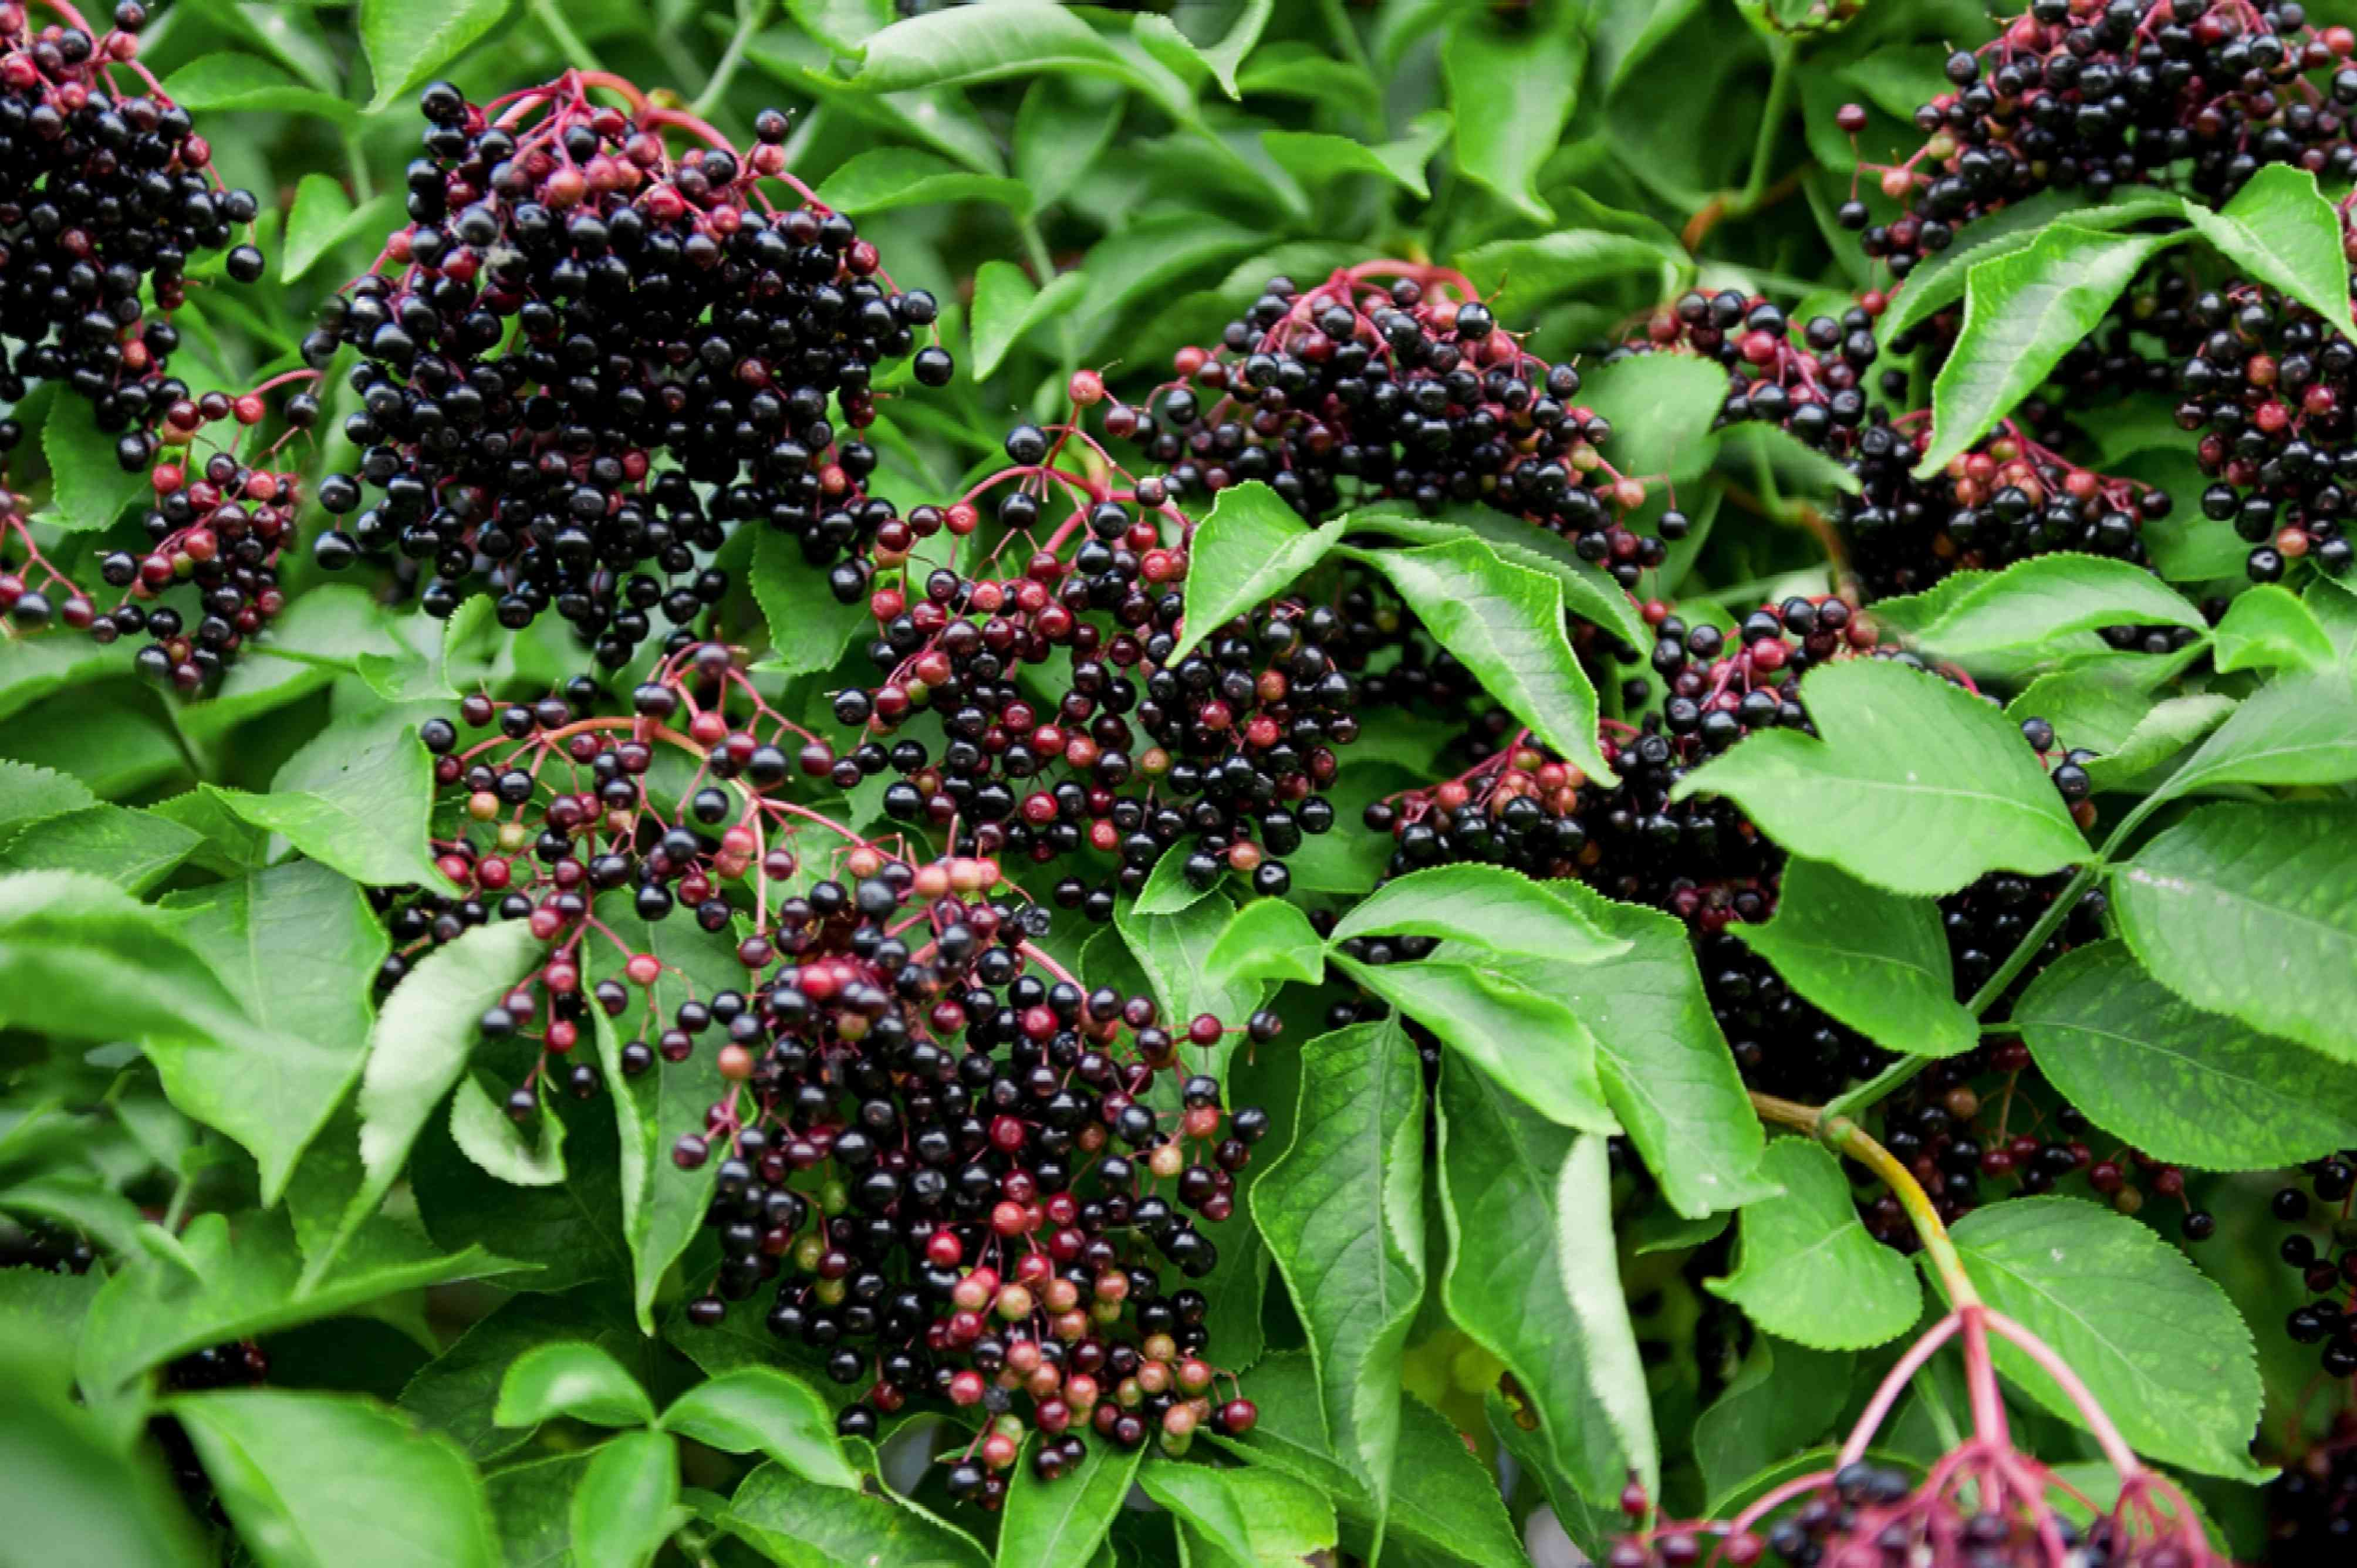 Common elderberry plant with black and red berries hanging between leaves